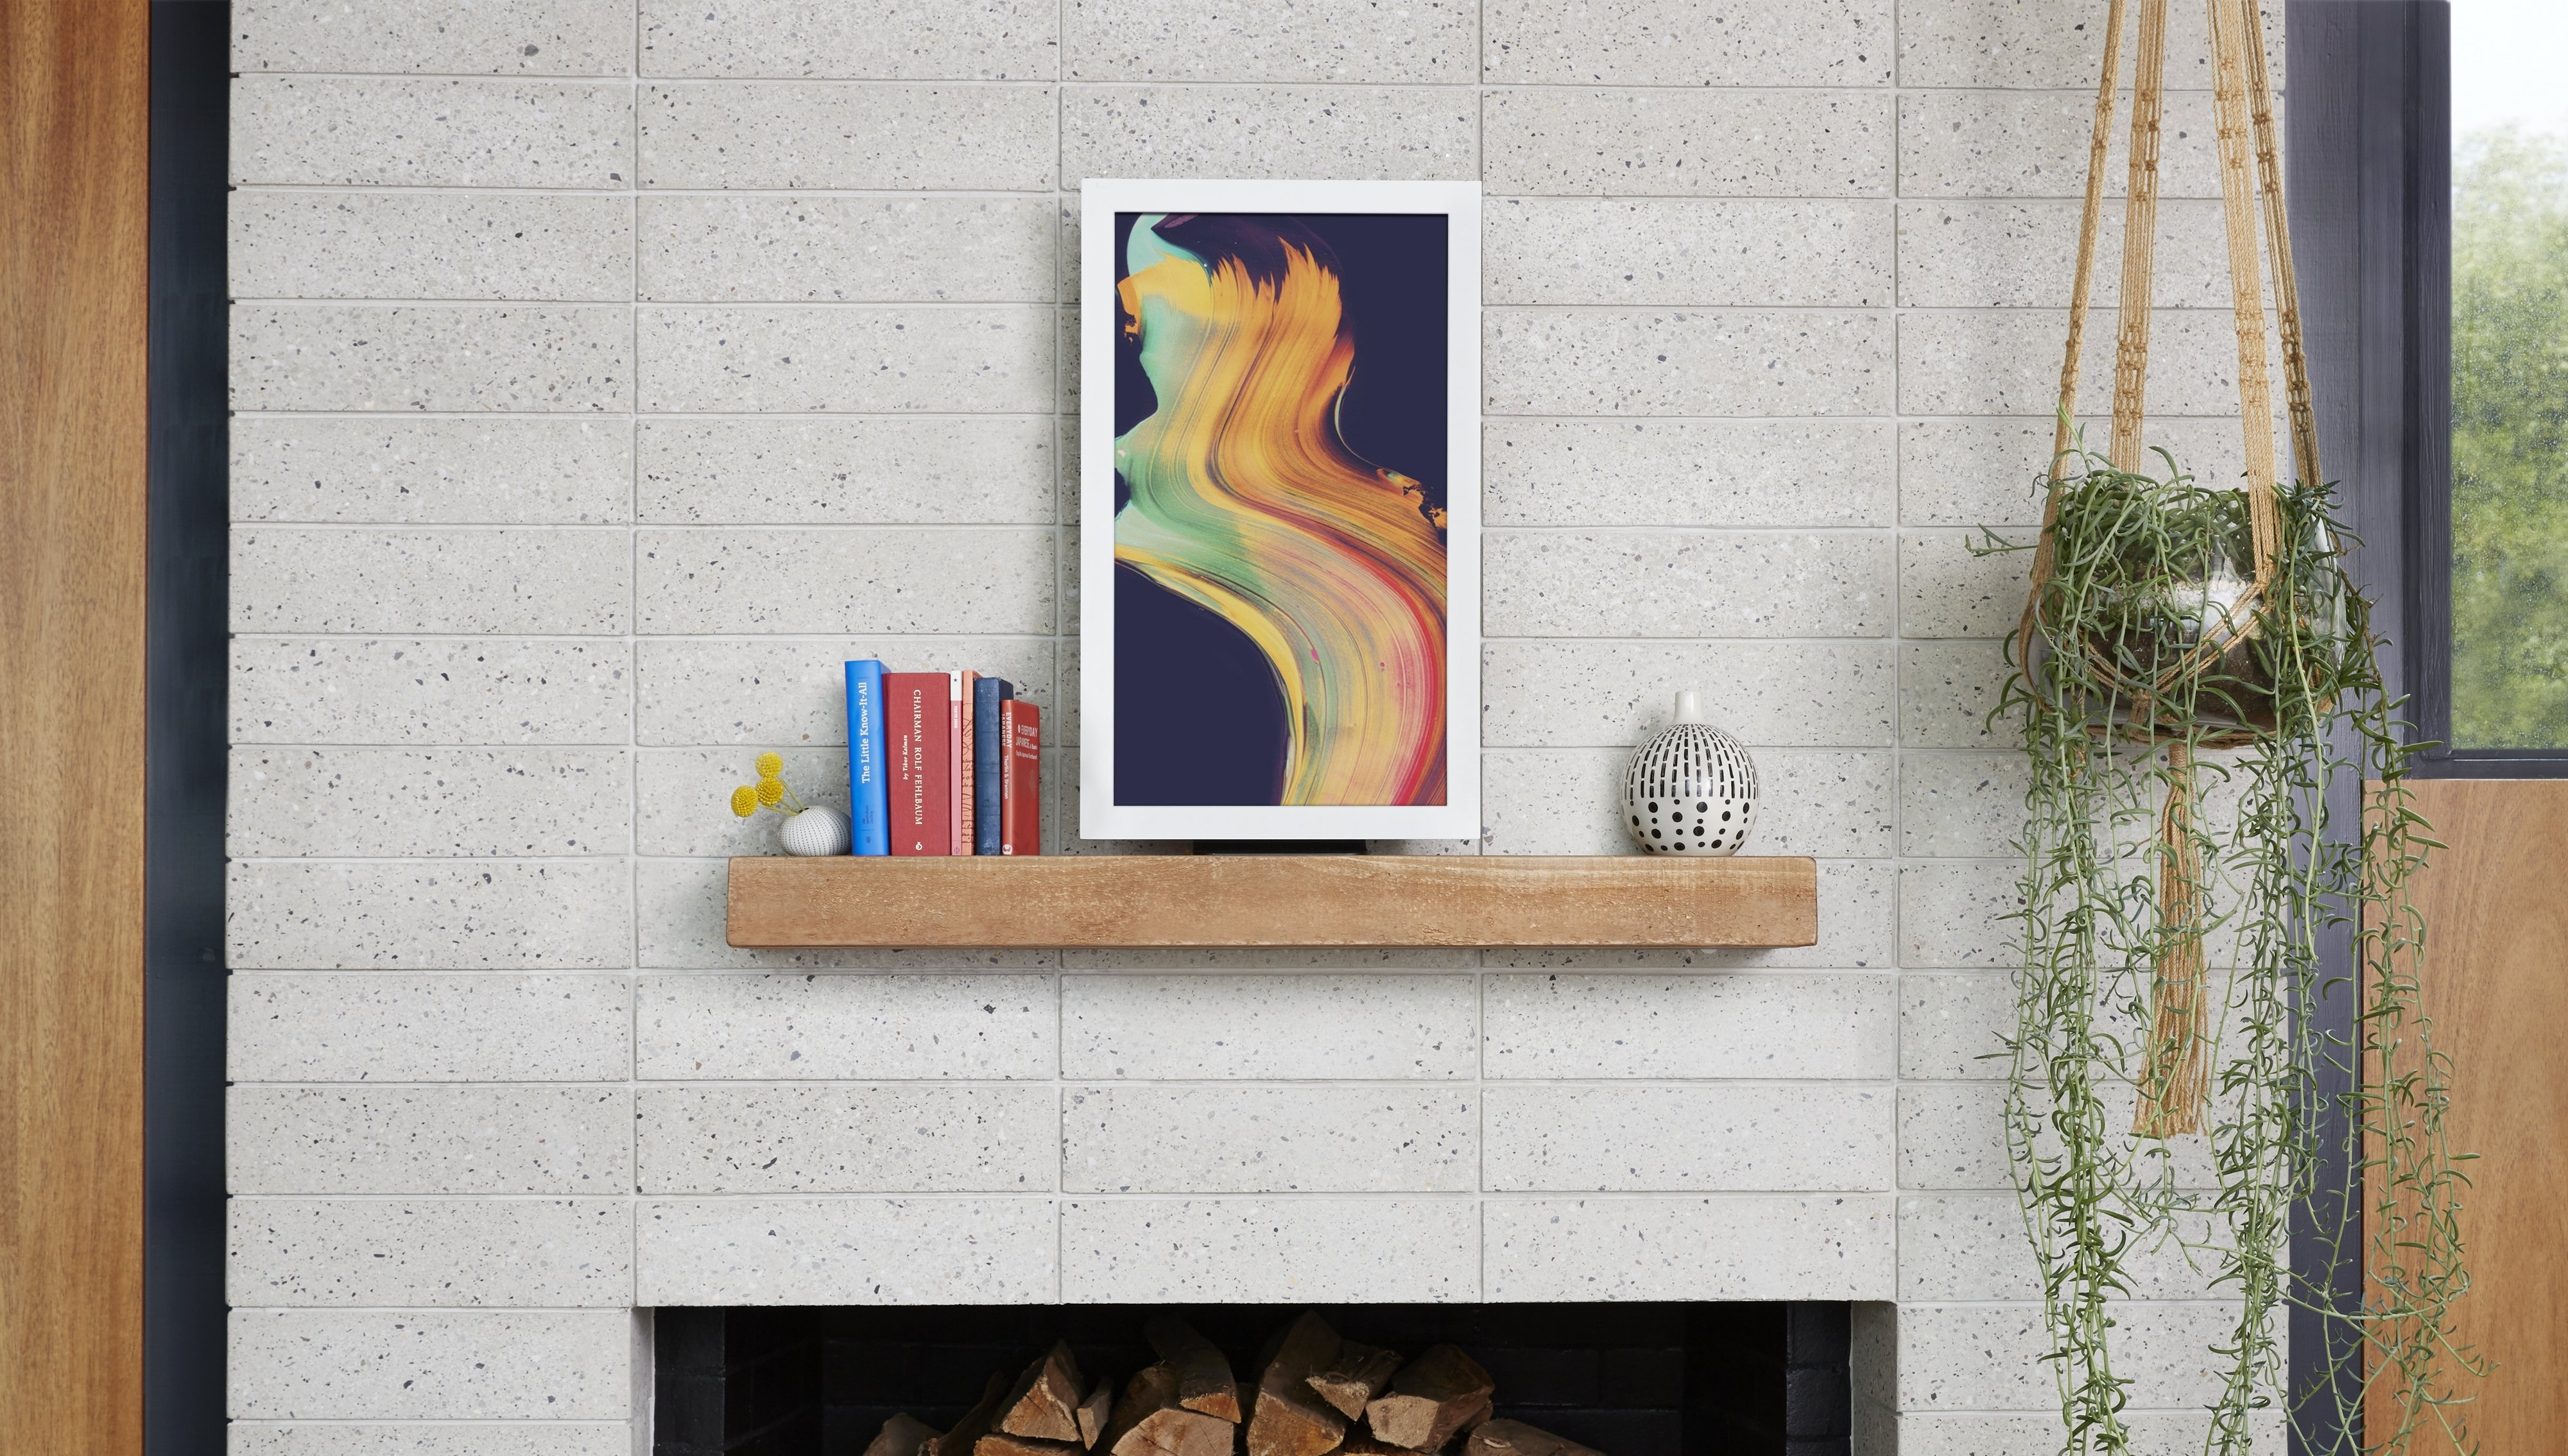 3 Digital Art Frames To Display The Classics And Your Instagram within Instagram Wall Art (Image 2 of 20)